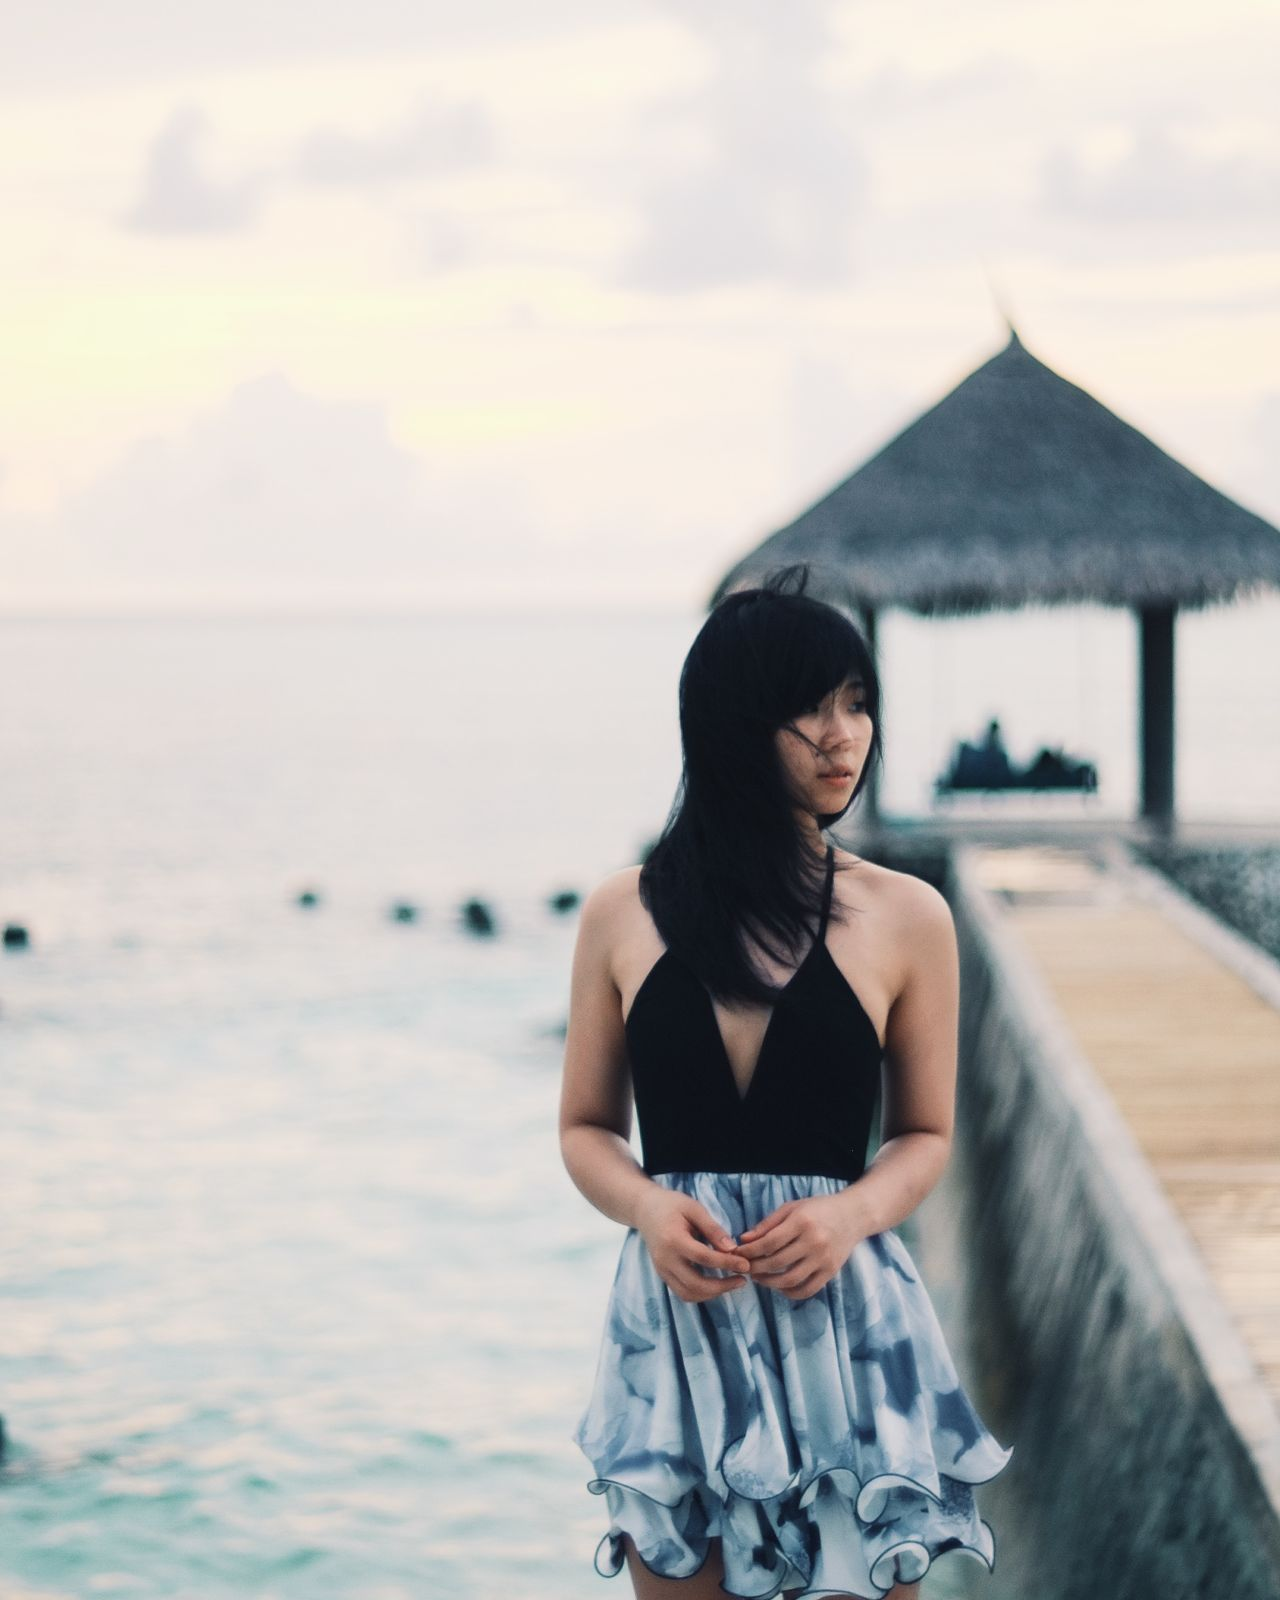 Sensuous woman standing by pier at seaside